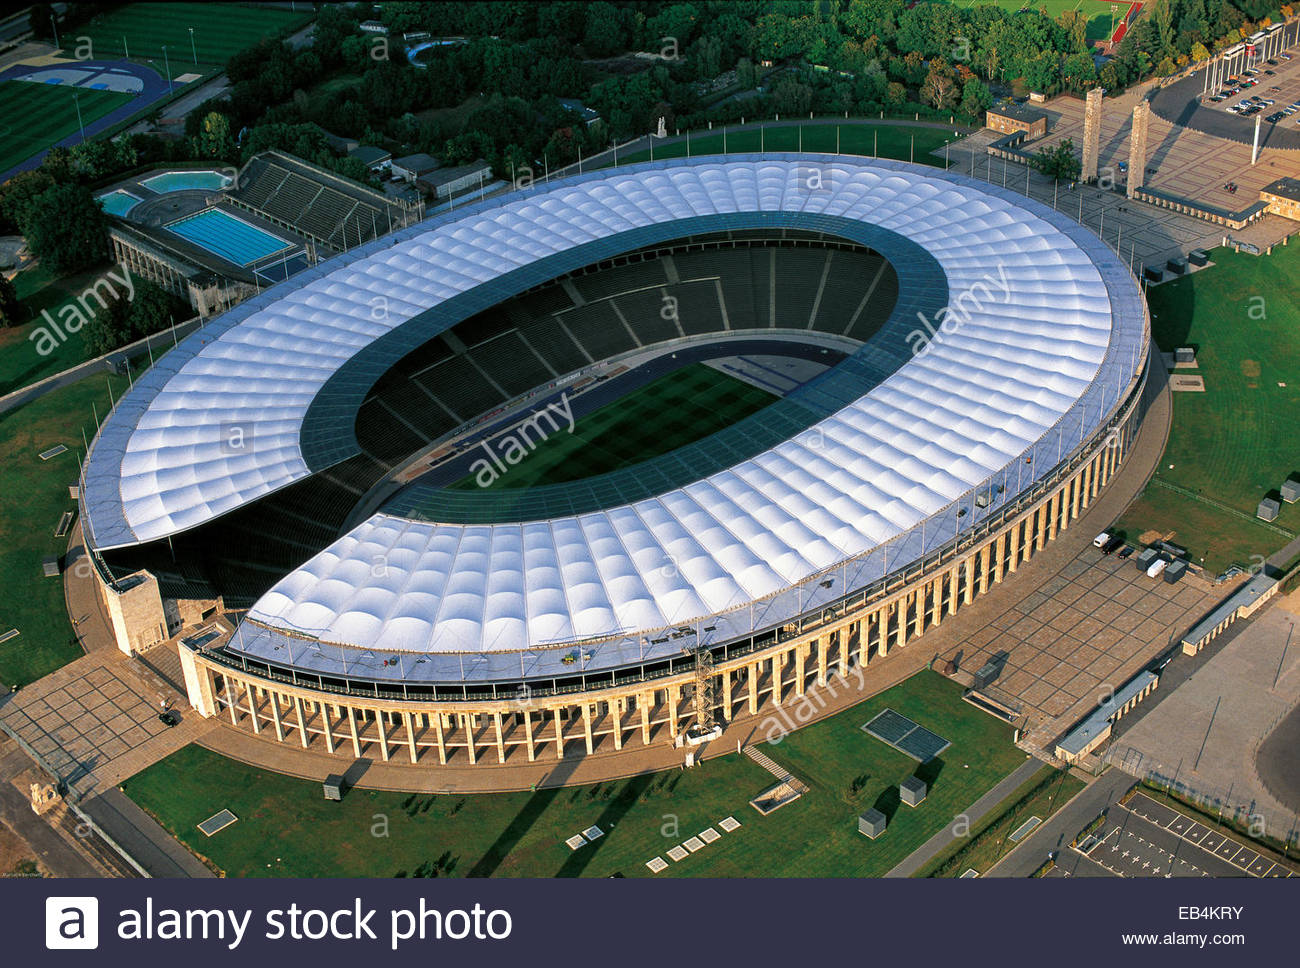 An aerial view of the Olympiastadion, or Olympic Stadium. - Stock Image